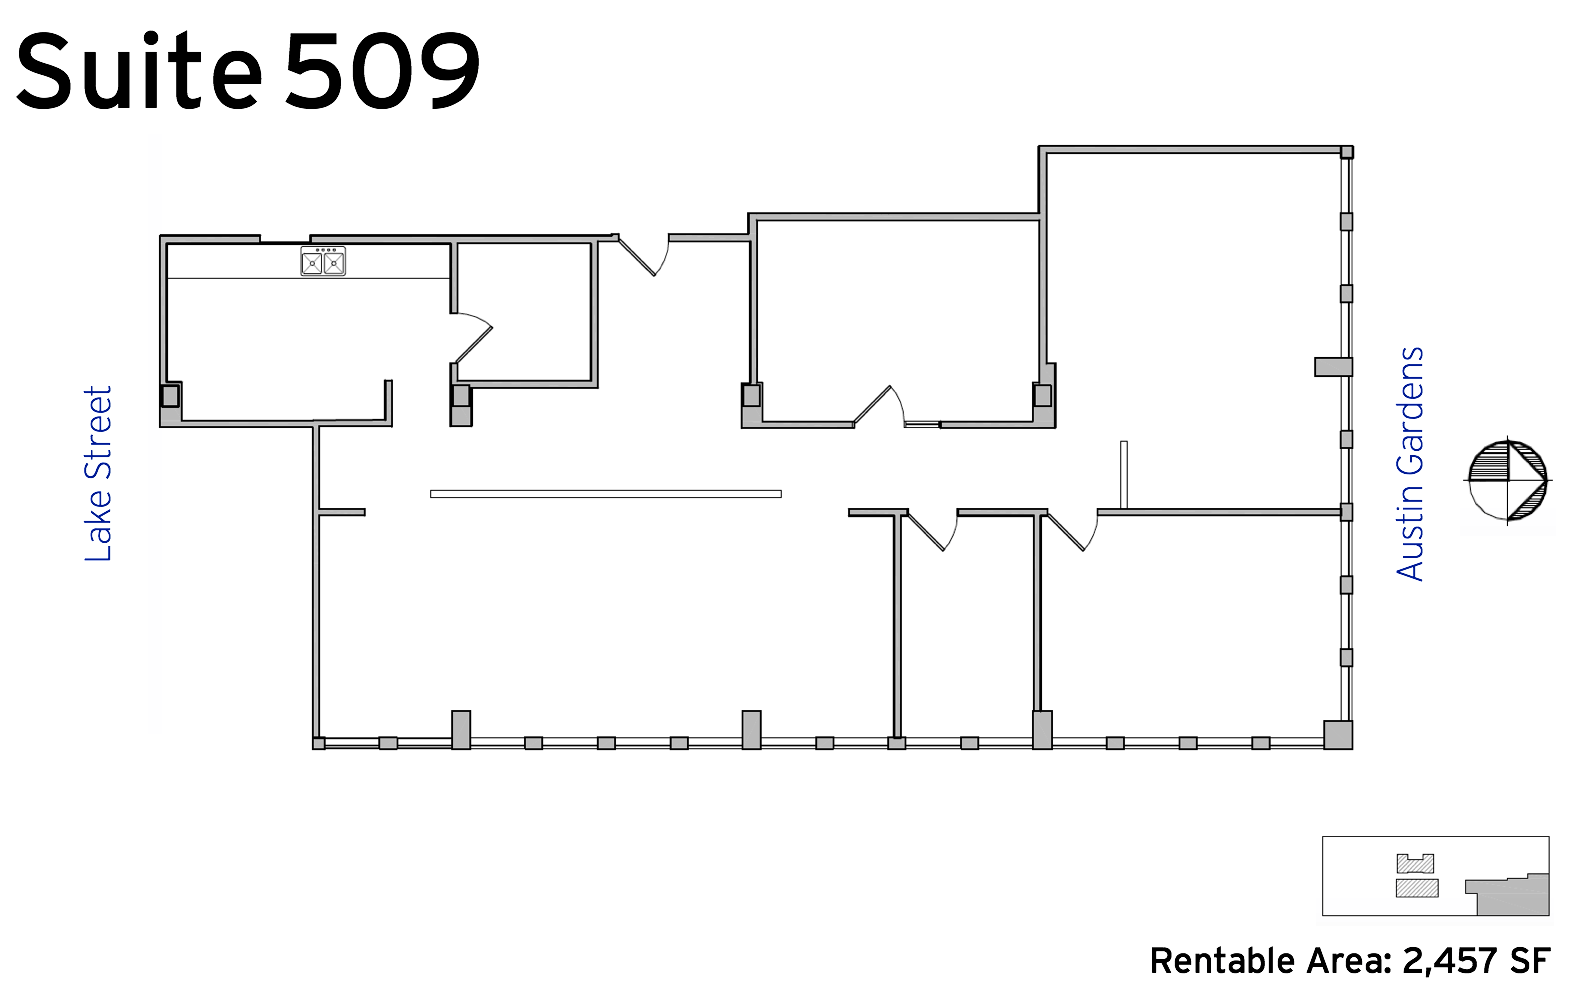 Suite 509 - 1010 Lake Street available office space floor plan